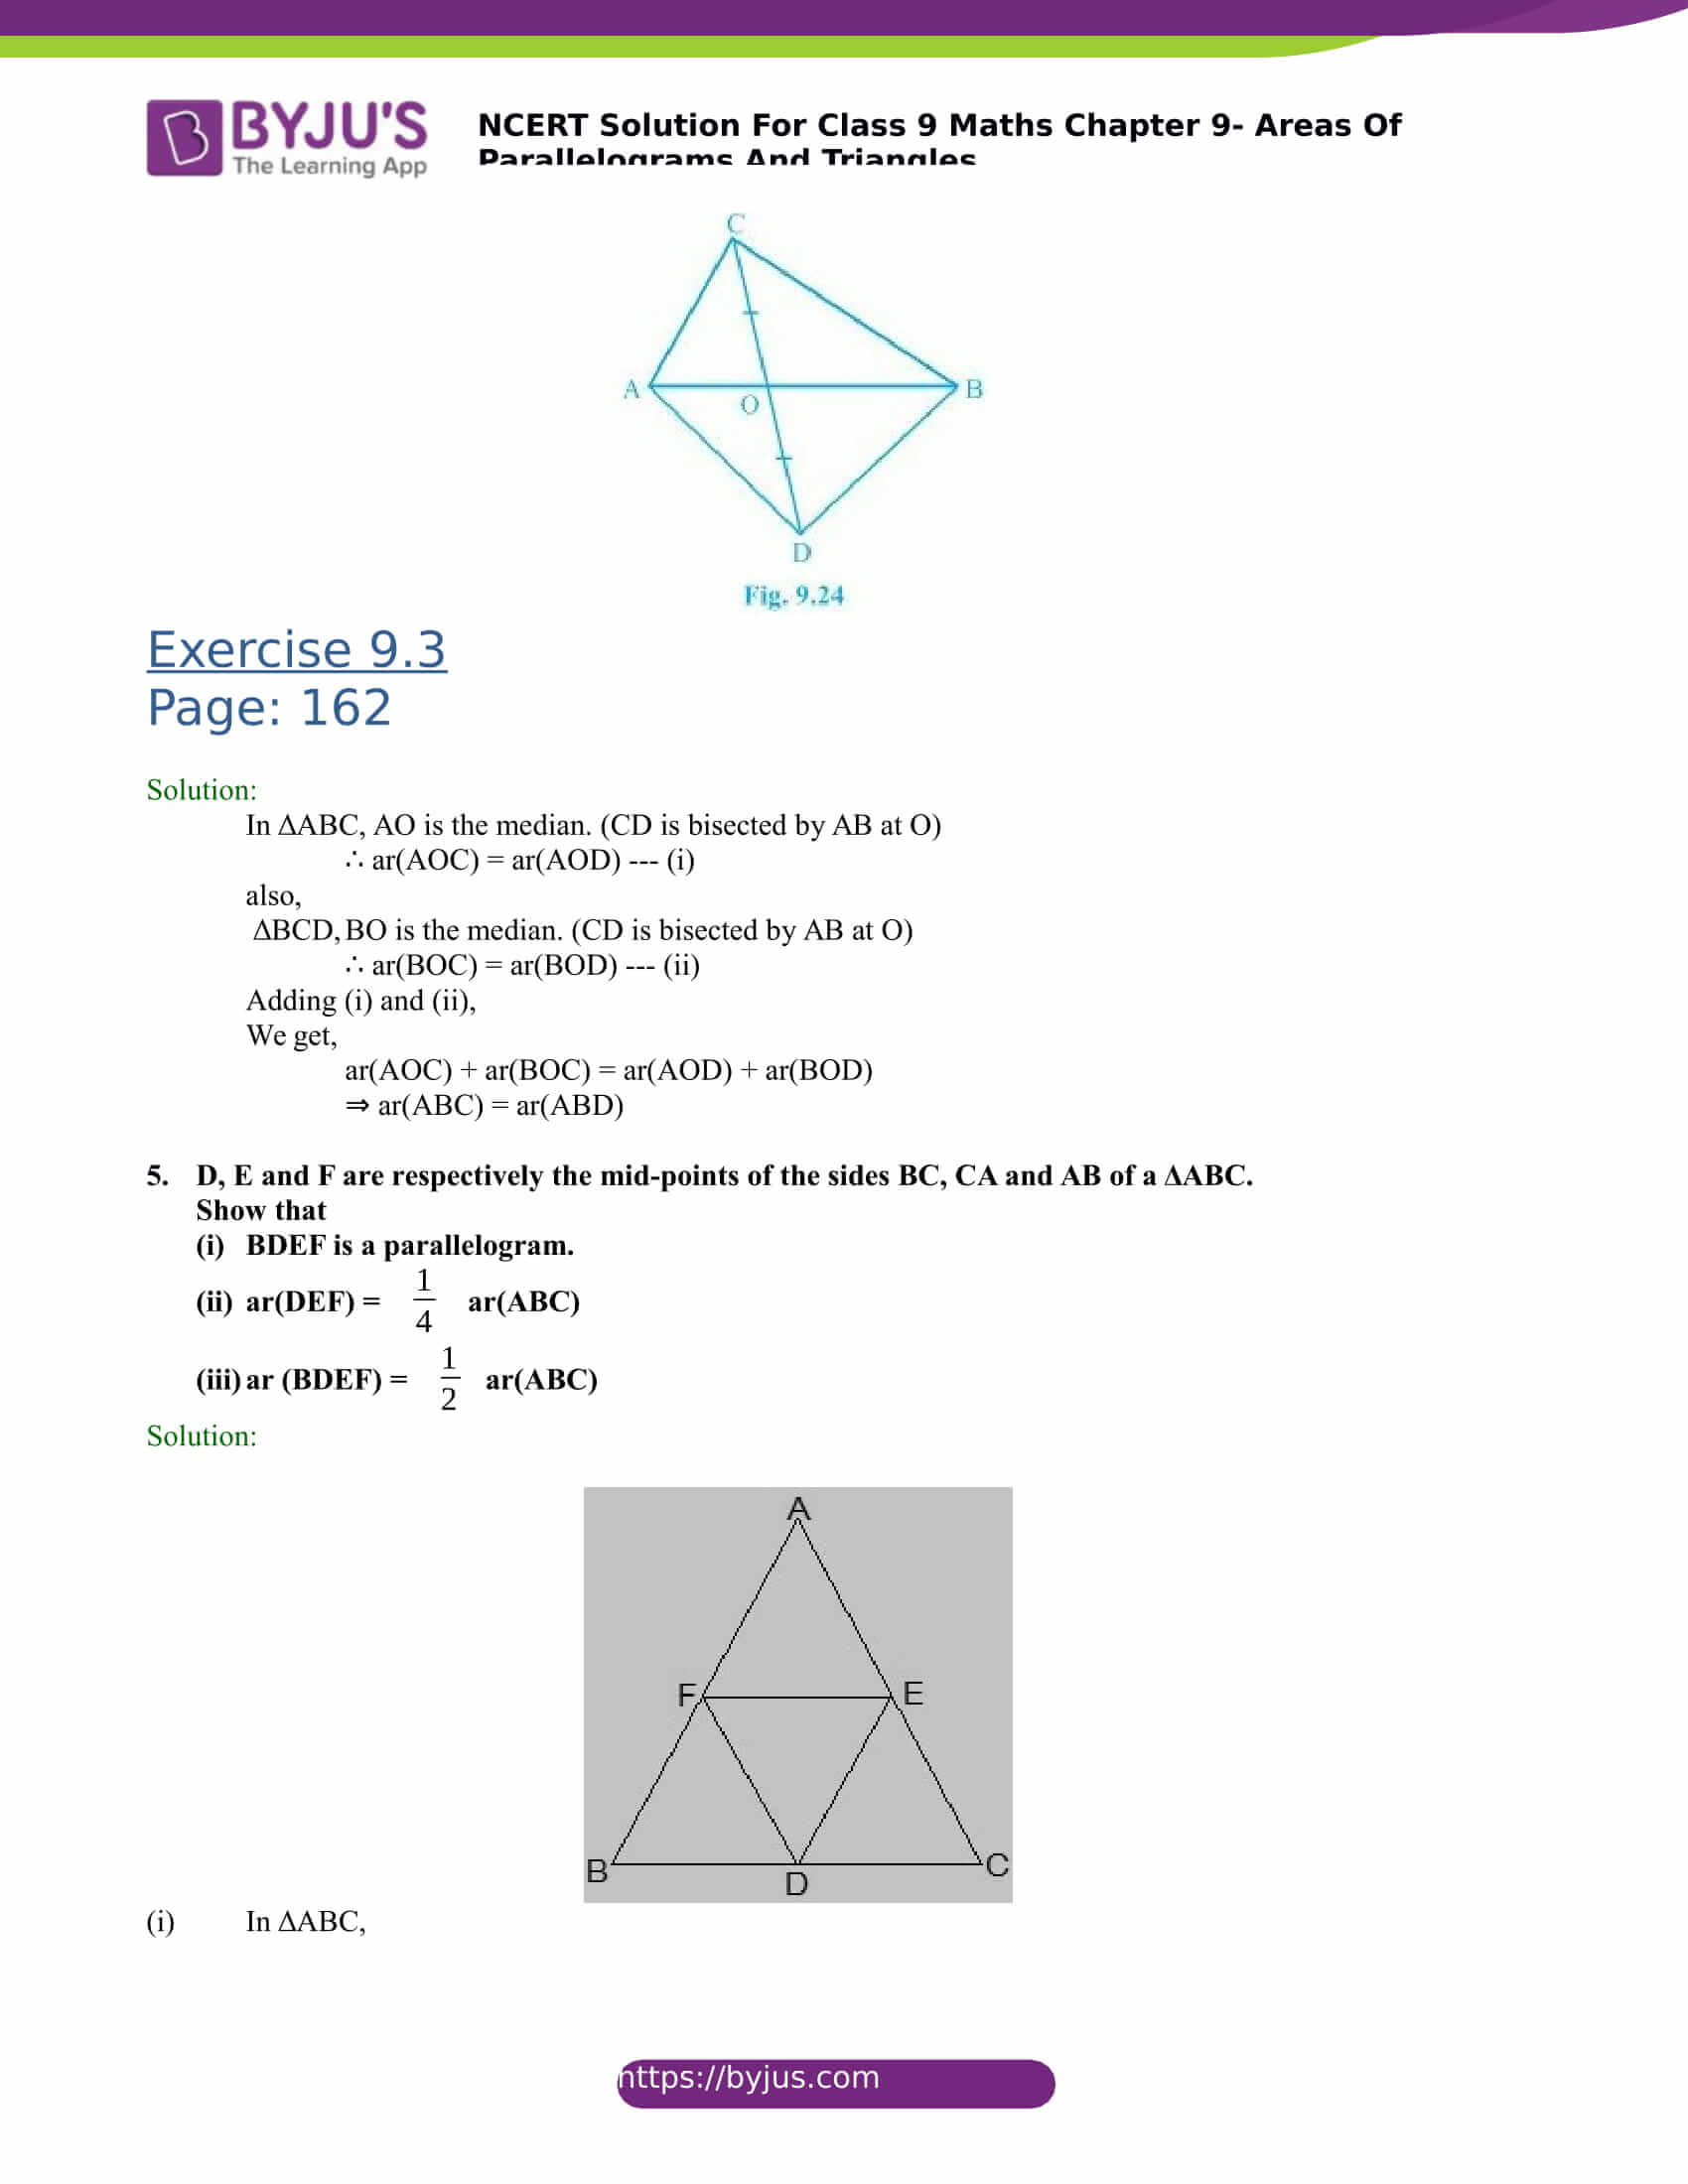 NCERT Solutions for class 9 Maths Chapter 9 Areas of parallelograms and triangles Part 9